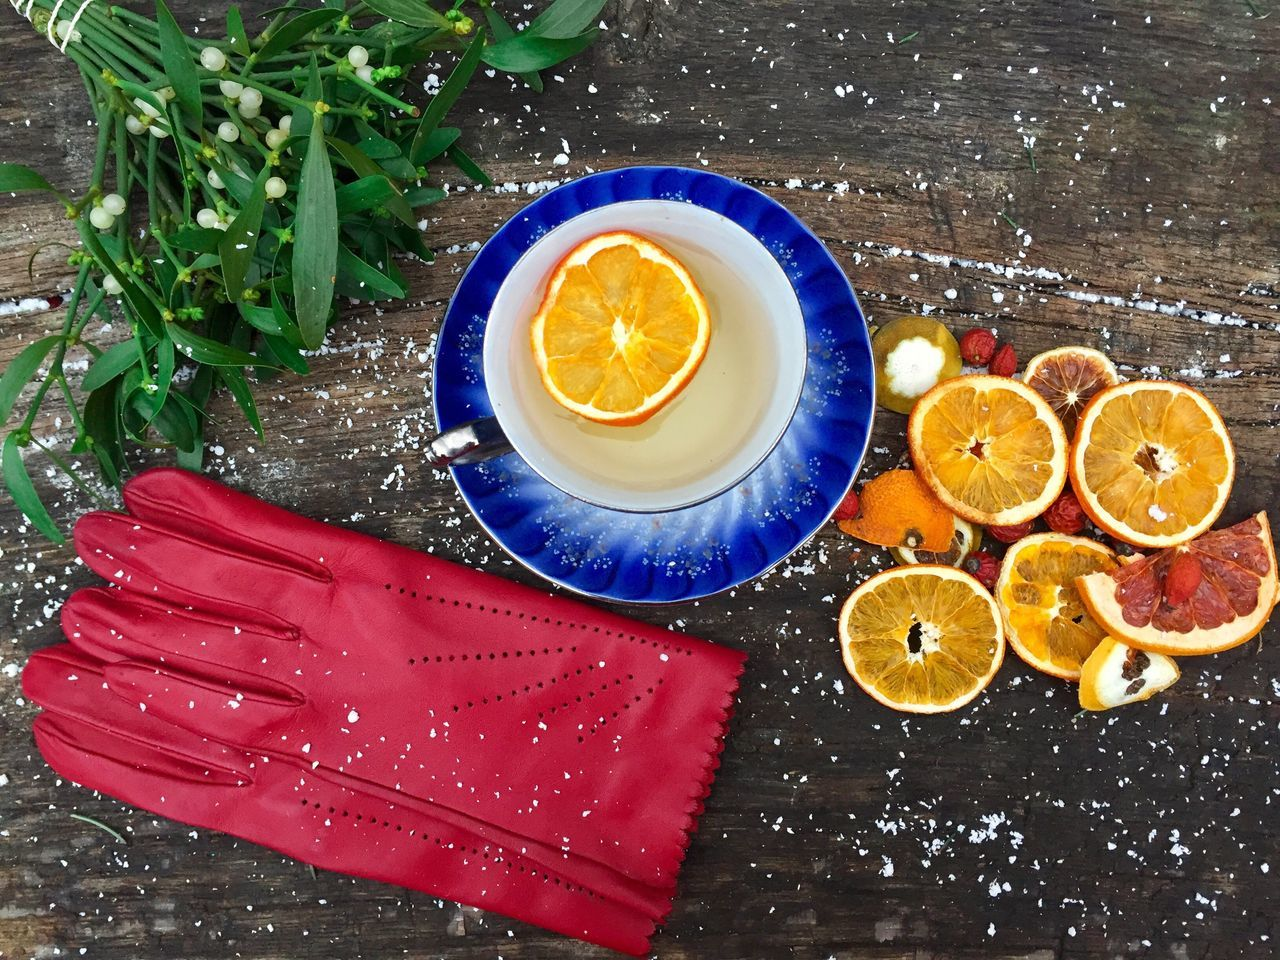 Red gloves near a mug of orange tea with dried orange slices beside and mistletoe on snowy table Lemon Table High Angle View Refreshment Freshness Drink Day Winter Snow Cold Gloves Red Gloves Table Snowy Mistletoe Drink Cup Glass Tea Slices Oranges